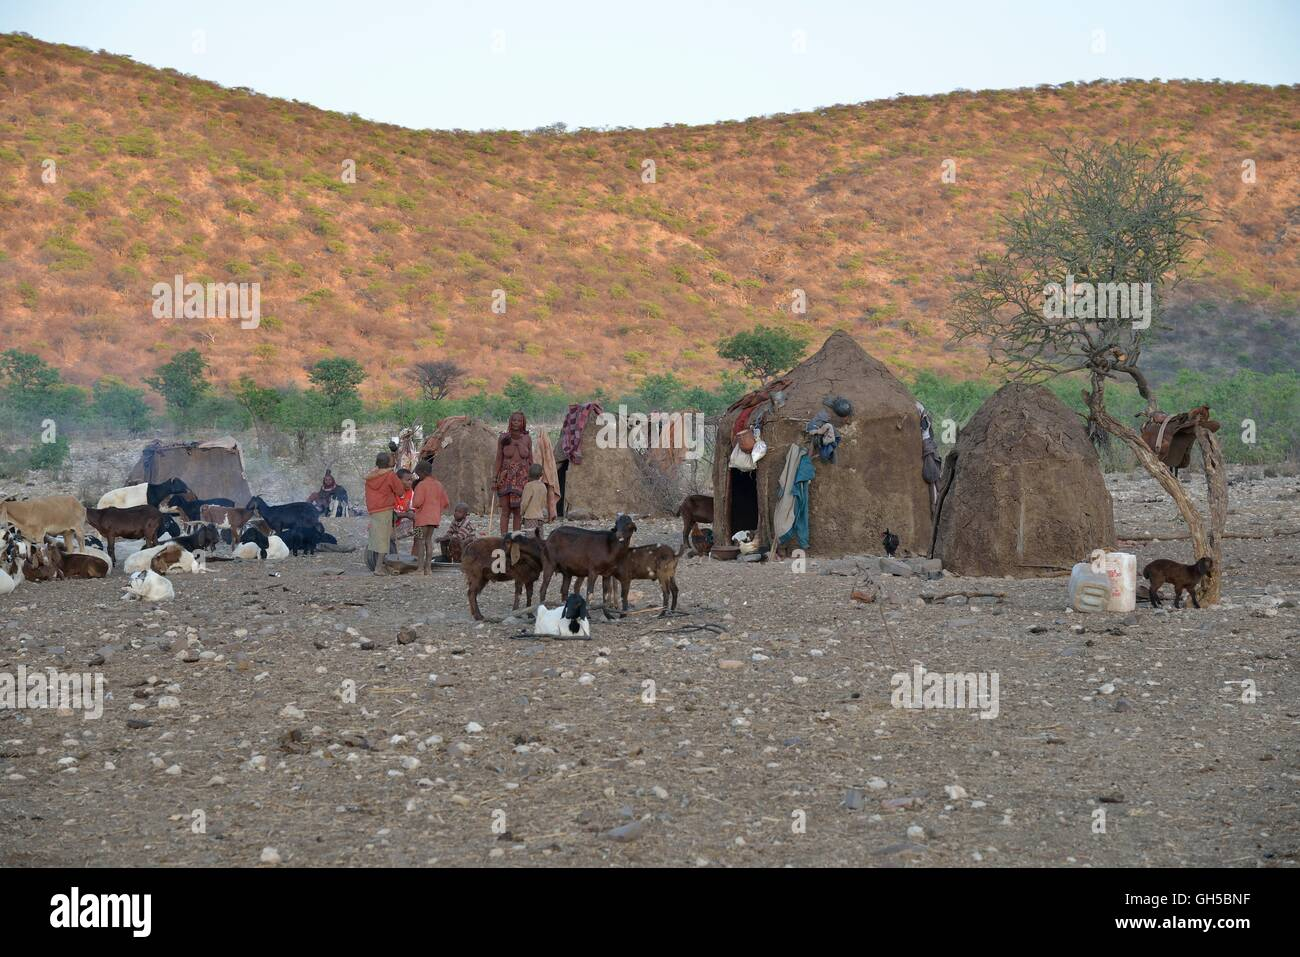 geography / travel, Namibia, Himba huts in the village Epaco, nearby Ombombo, Kaokoveld, Additional-Rights-Clearance - Stock Image